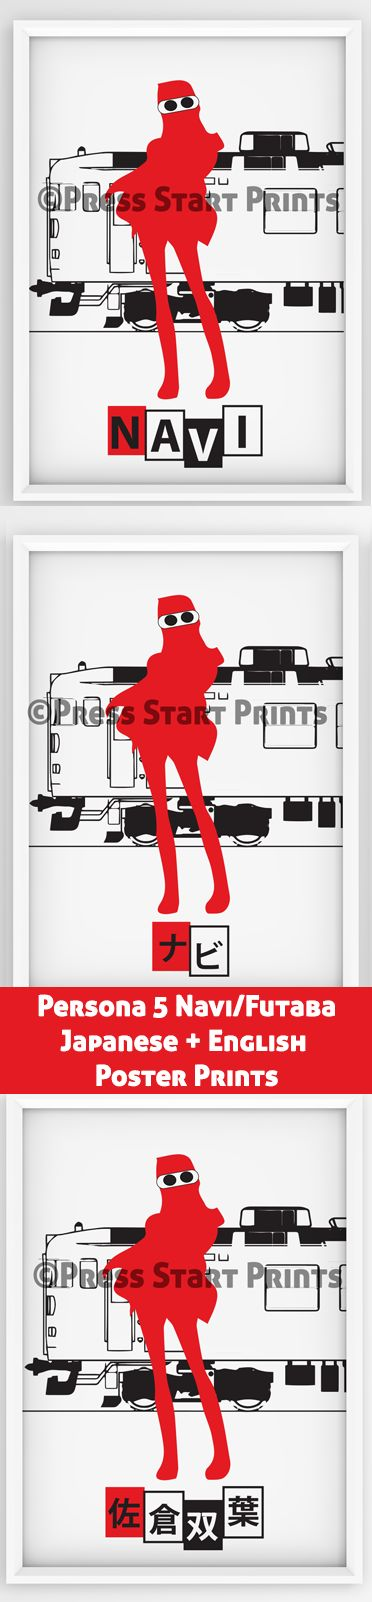 Set of 3 Persona 5 Navi (Futaba Sakura) Digital Print Posters. One is in English and the other two are in Japanese (one with 'Navi' and the other with her full name). Repin and check out here https://www.etsy.com/nz/listing/520787761/persona-4-futaba-sakura-navi-digital? Other Persona 5 prints are available including a whole set of 23!